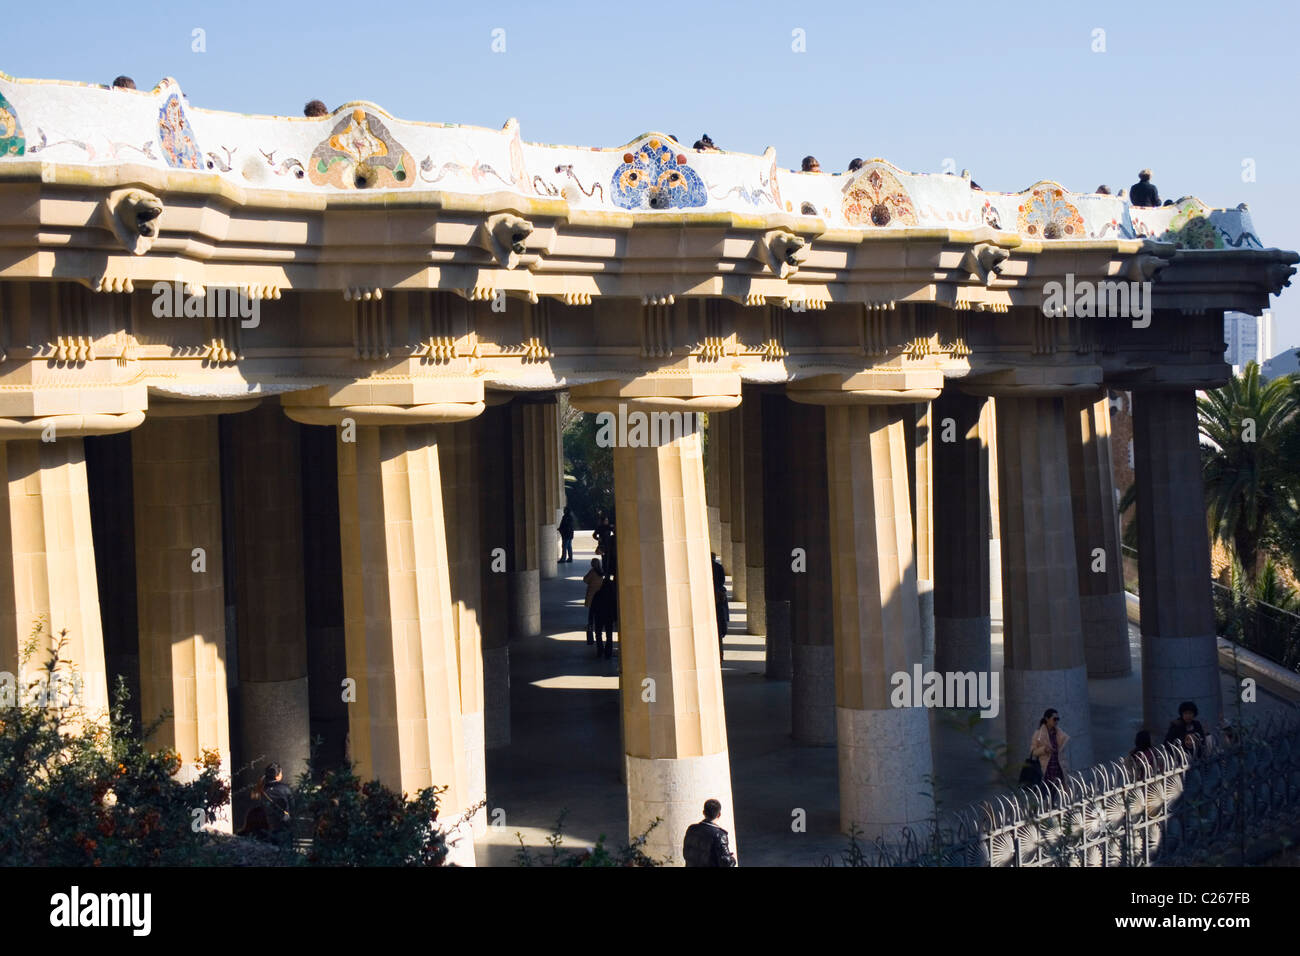 Barcelona, Spain. The Hall of the Hundred Columns in the Parc Guell. - Stock Image